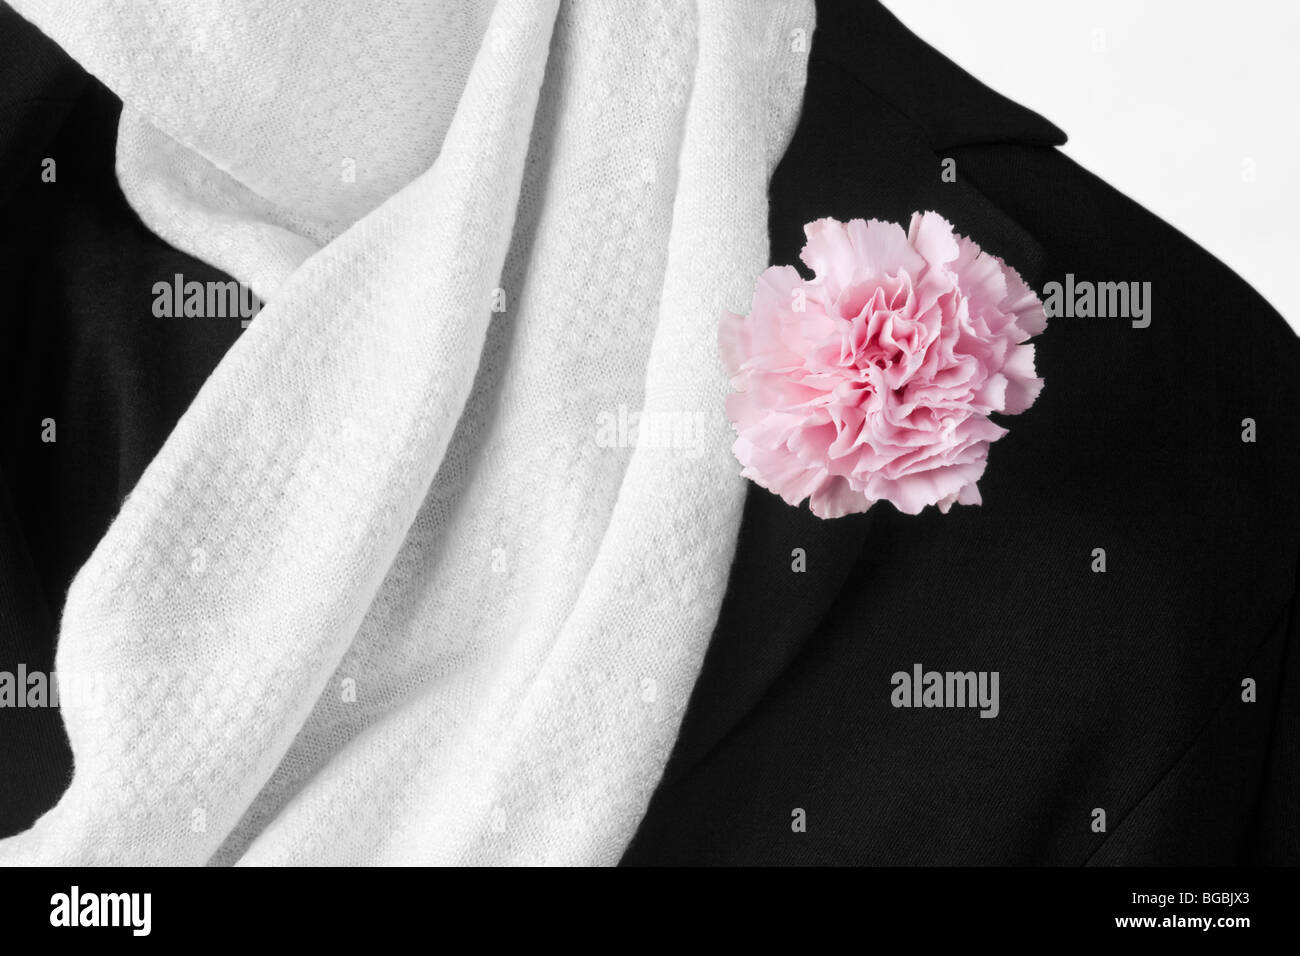 Close up of white silk scarf and black jacket - Stock Image